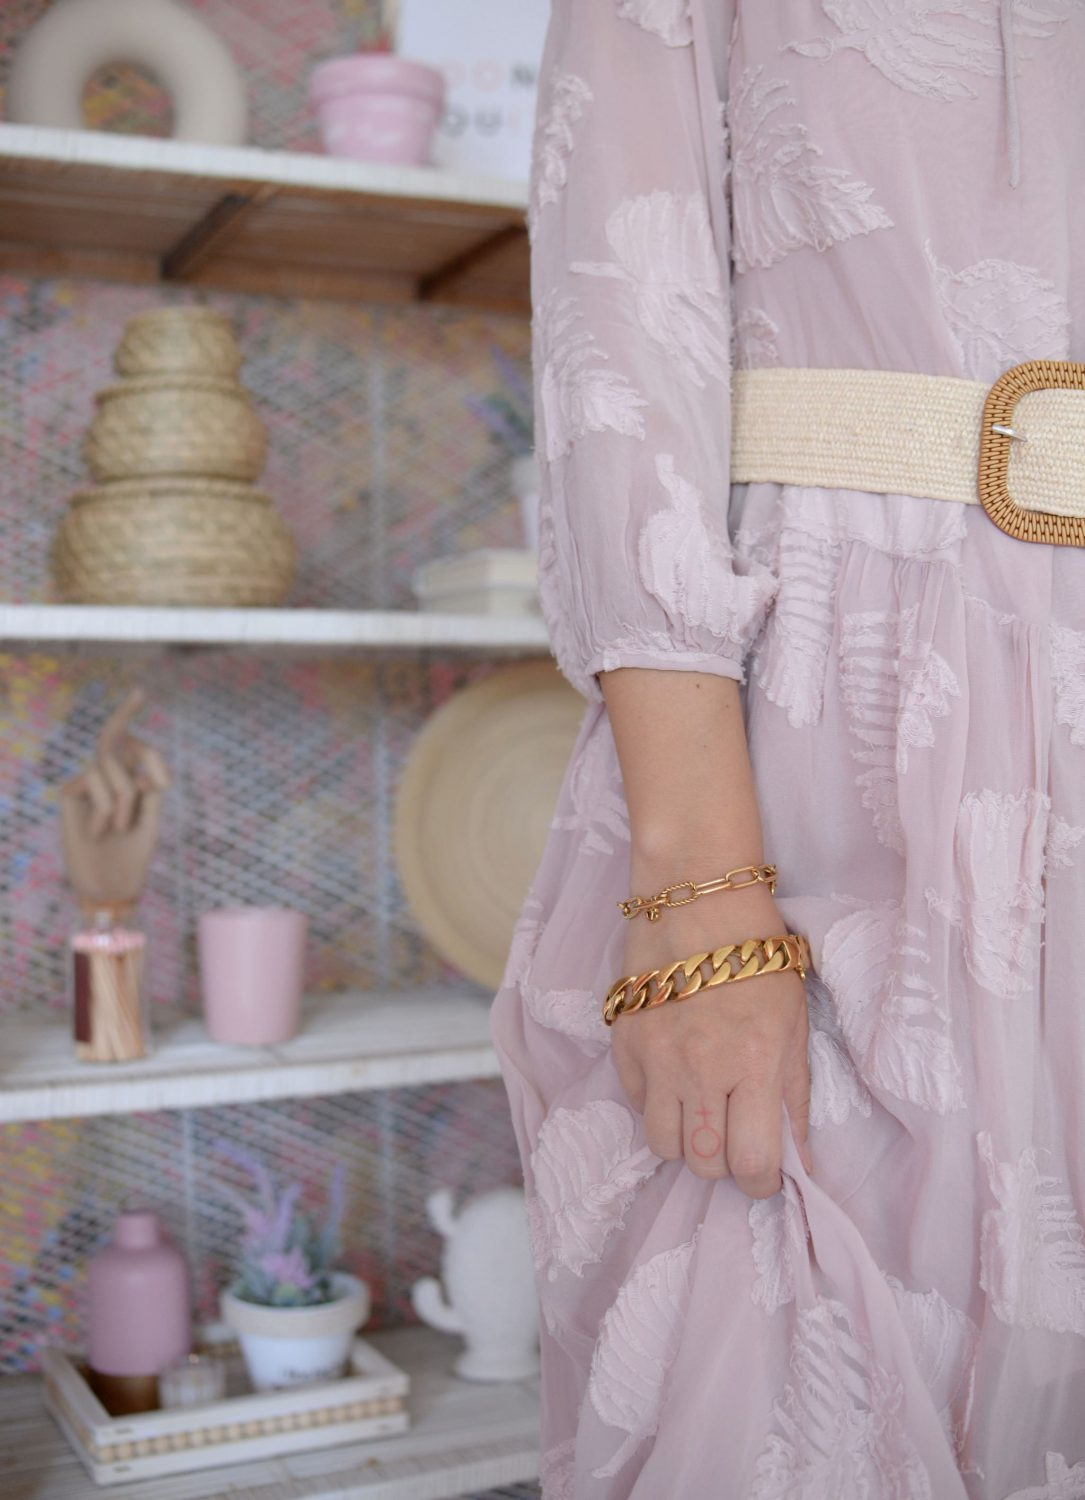 Small Fashion Mistakes That Can Ruin A Perfect Outfit